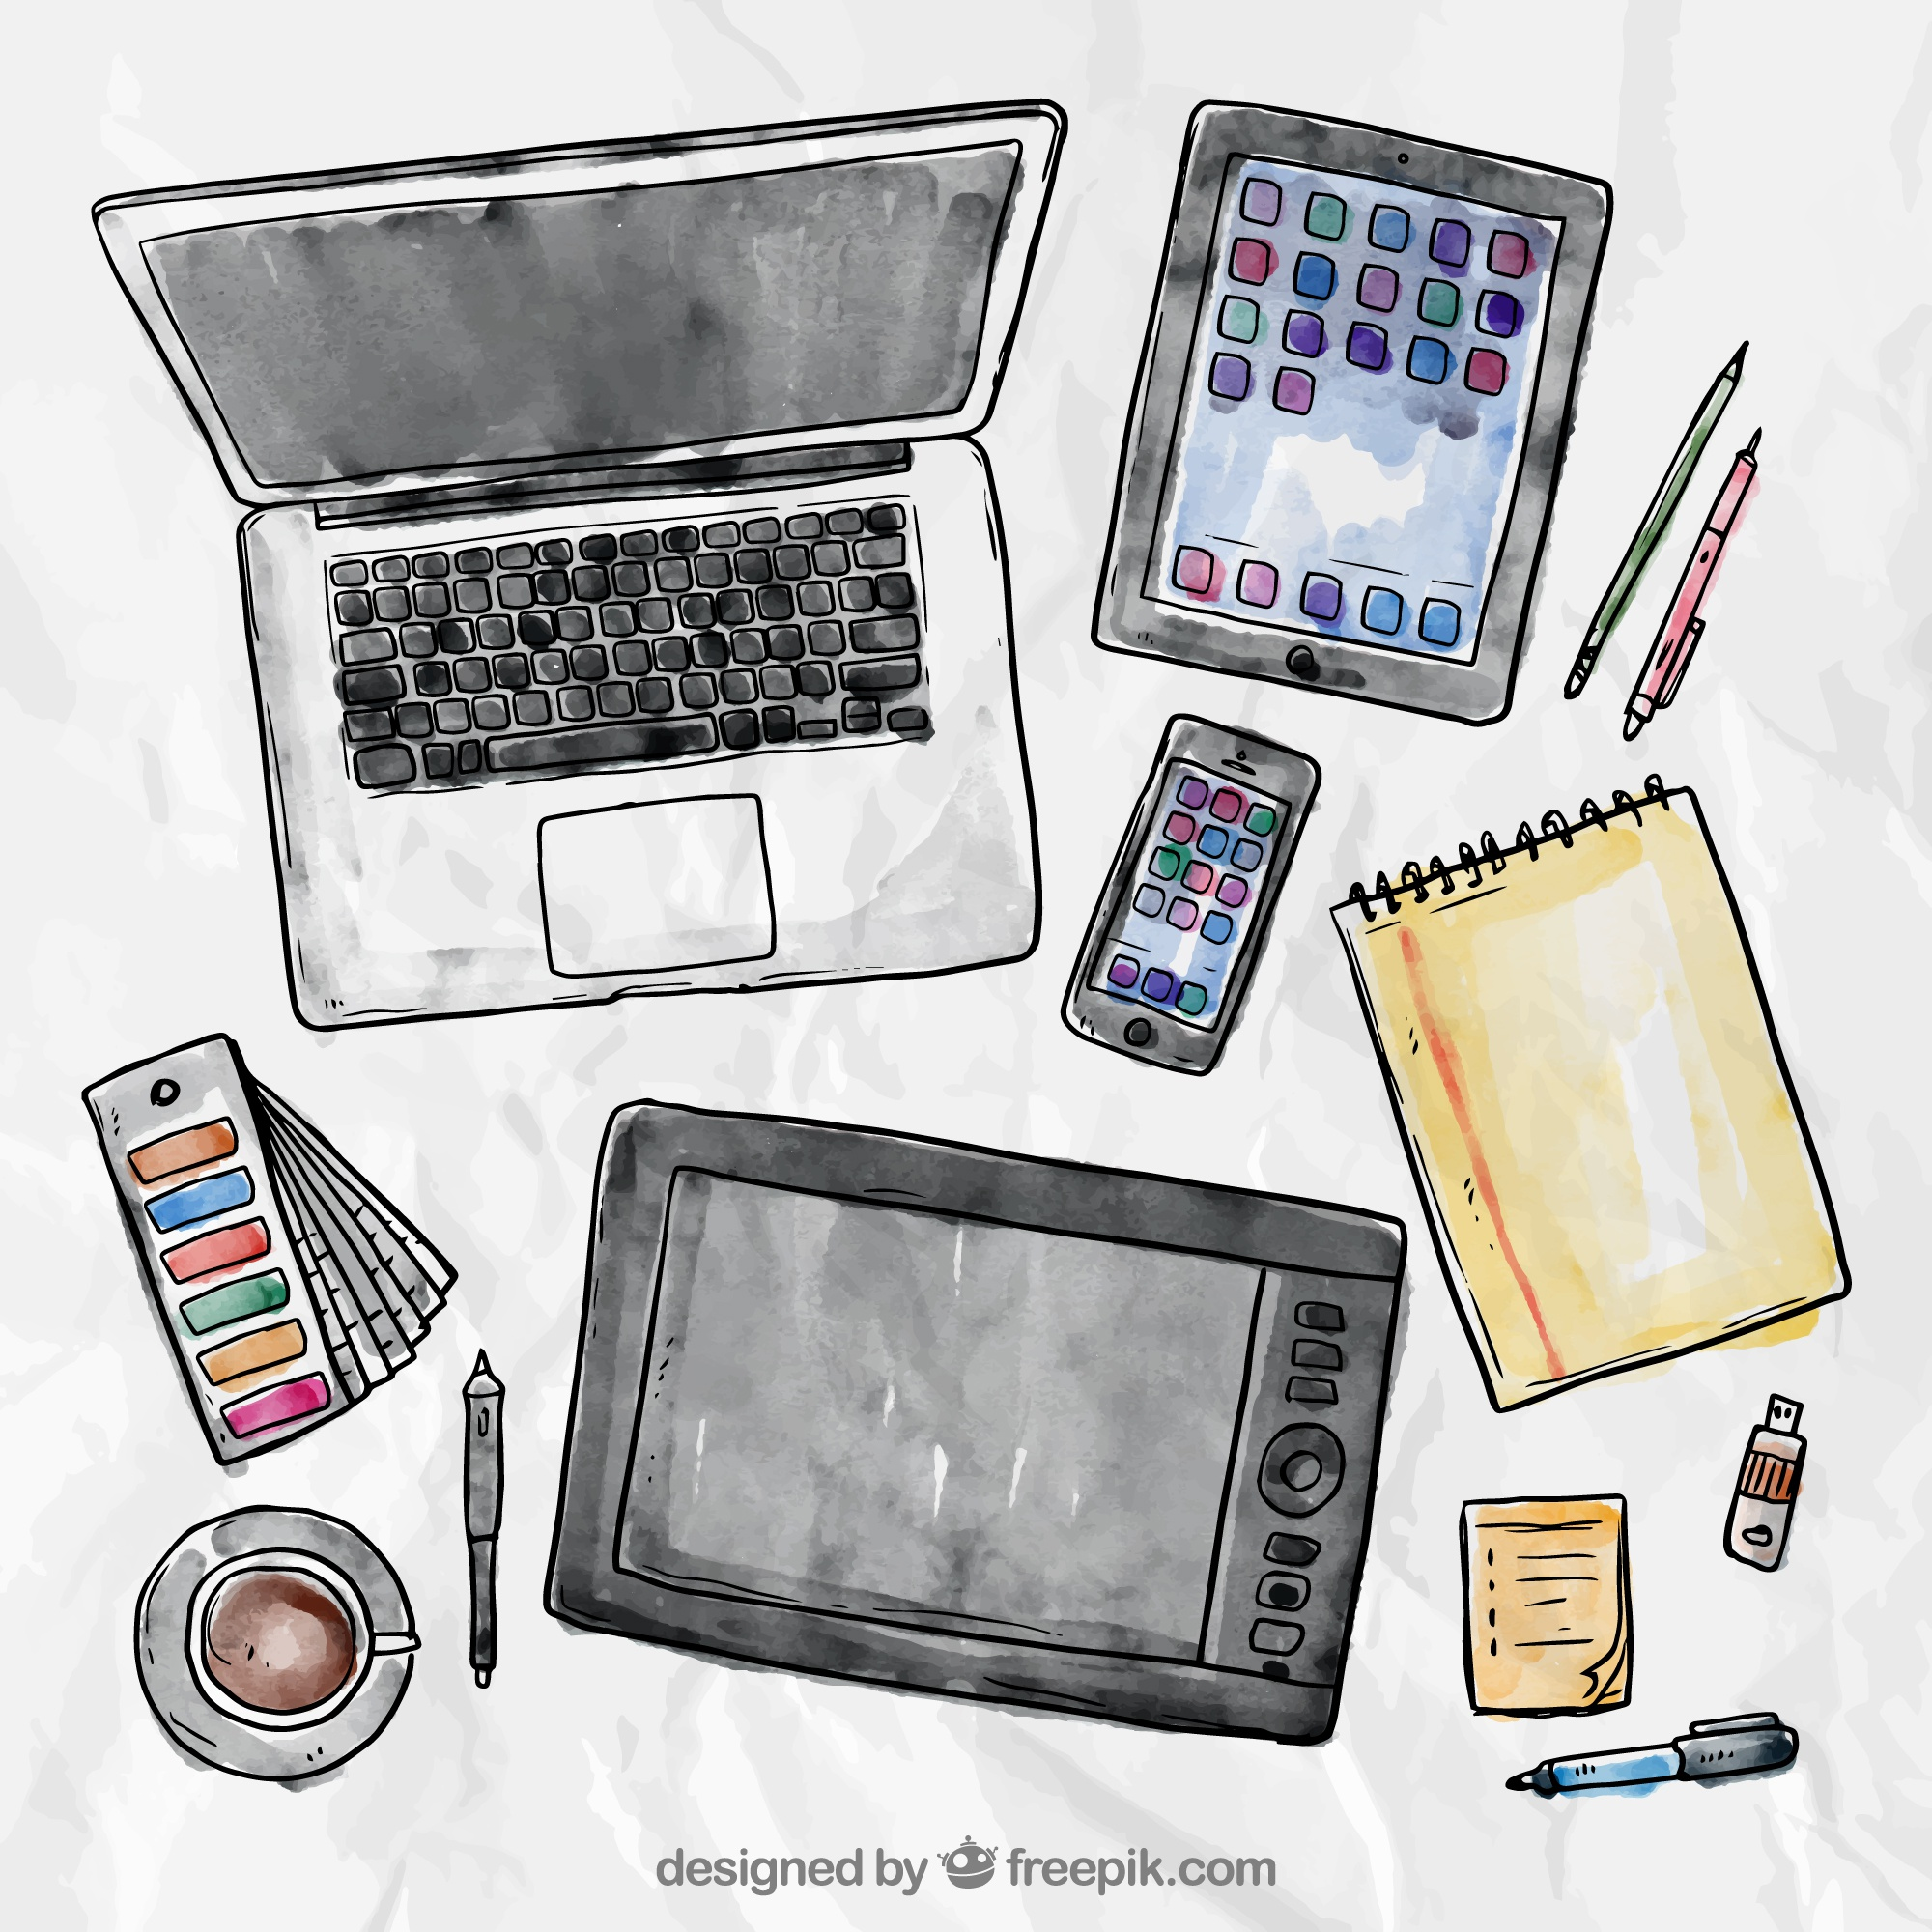 Laptop Tablet Smartphone and Writing Tools